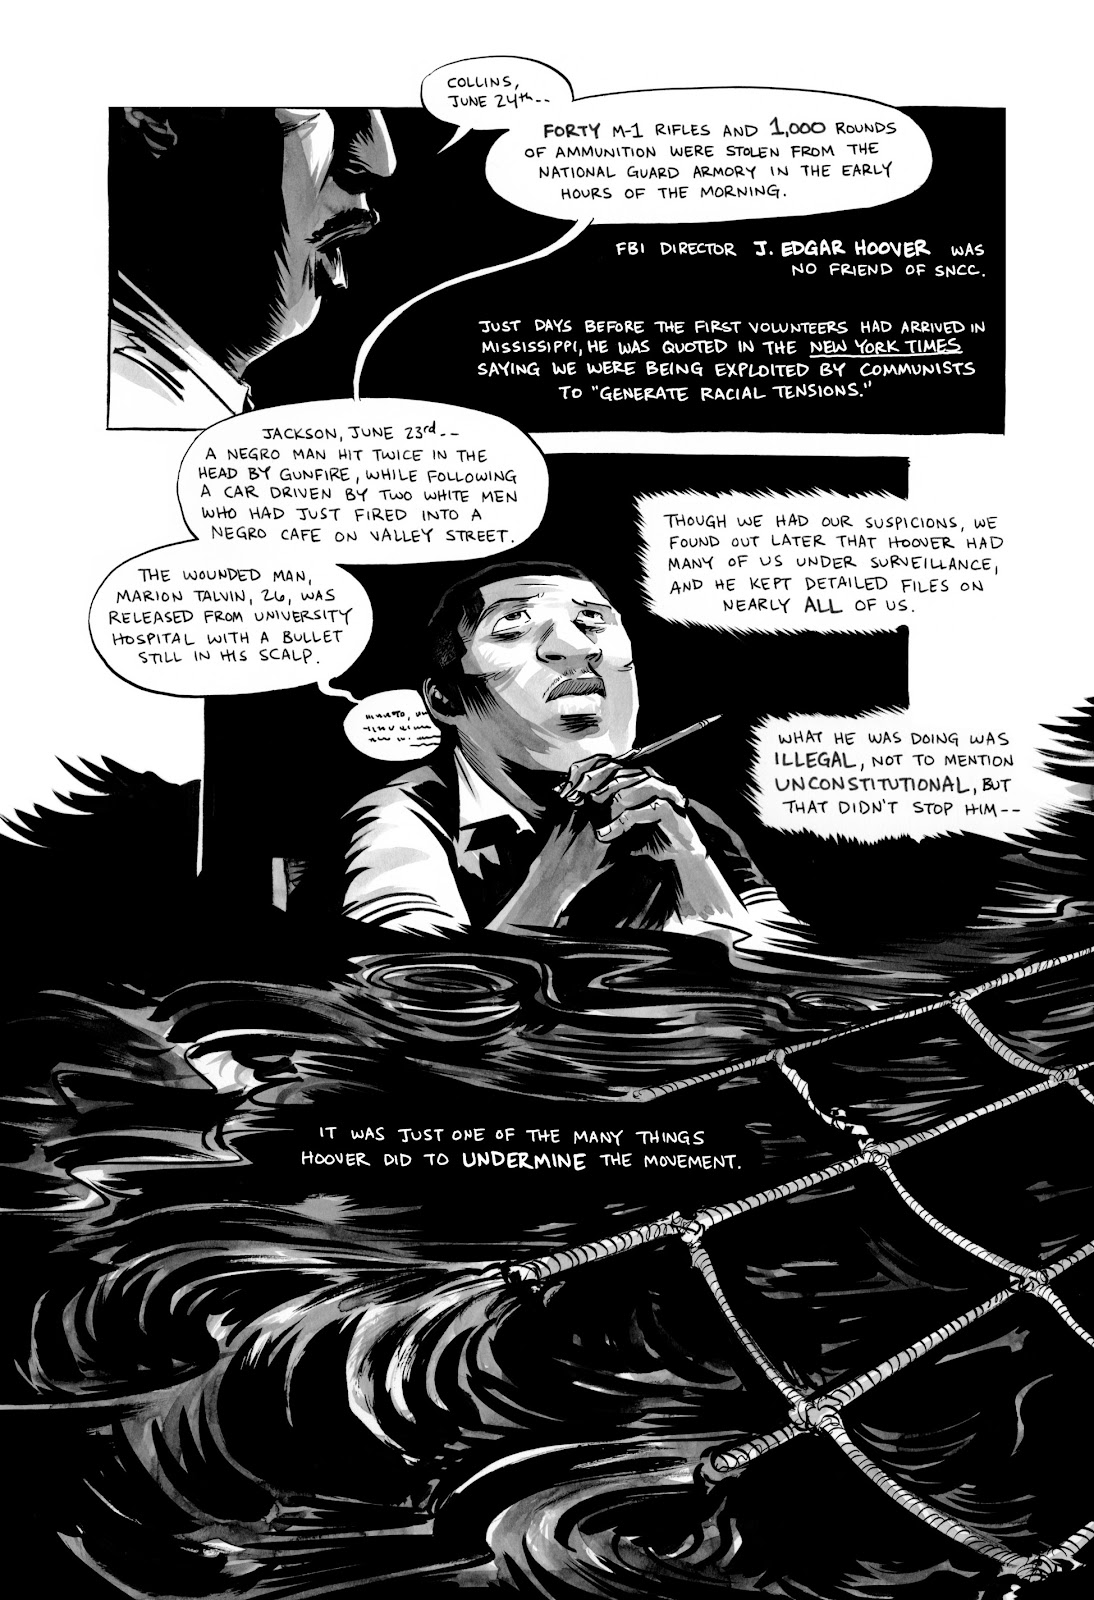 March 3 Page 79